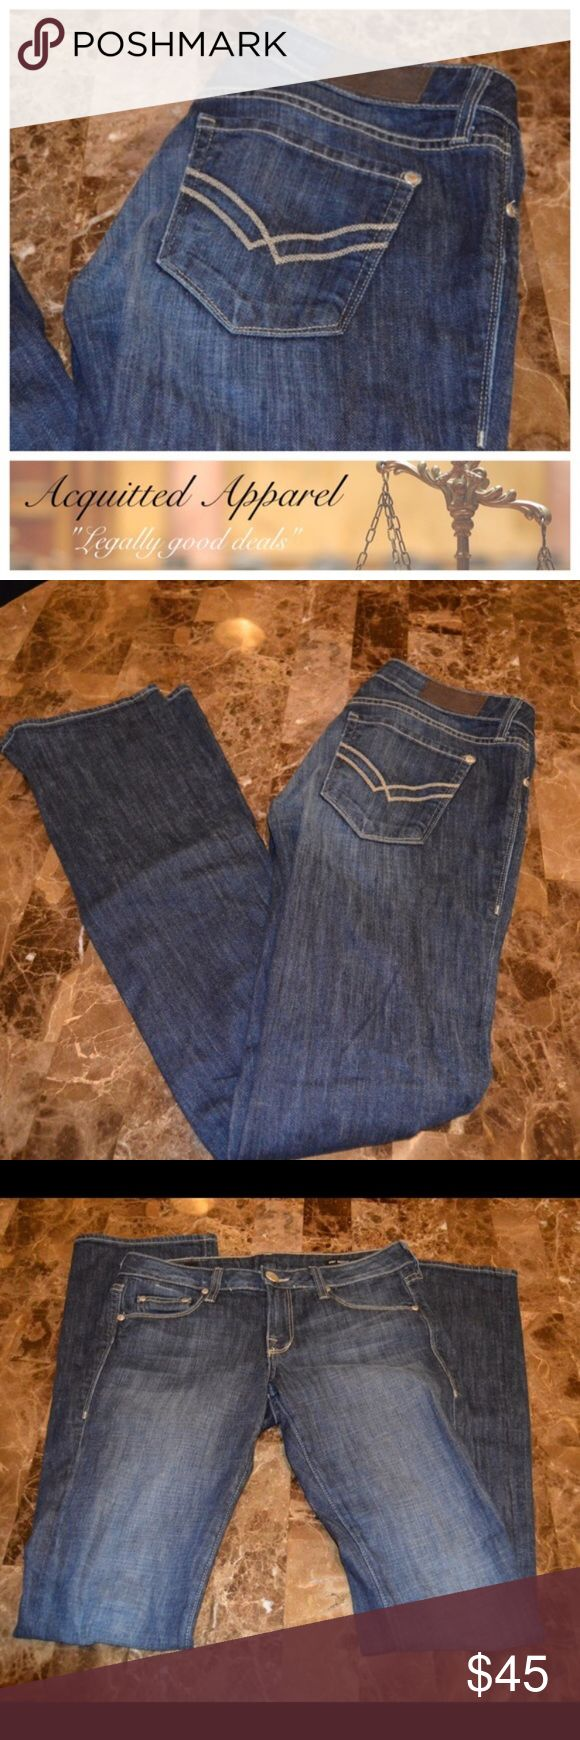 "[William Rast] {NWOT} Baby Boot Jeans 34.5"" inseam William Rast New Without Tags Baby Boot Cut Jeans Size 27 98% cotton 2% elastin Approximate 34.5"" inseam and 8"" rise William Rast Jeans Boot Cut"